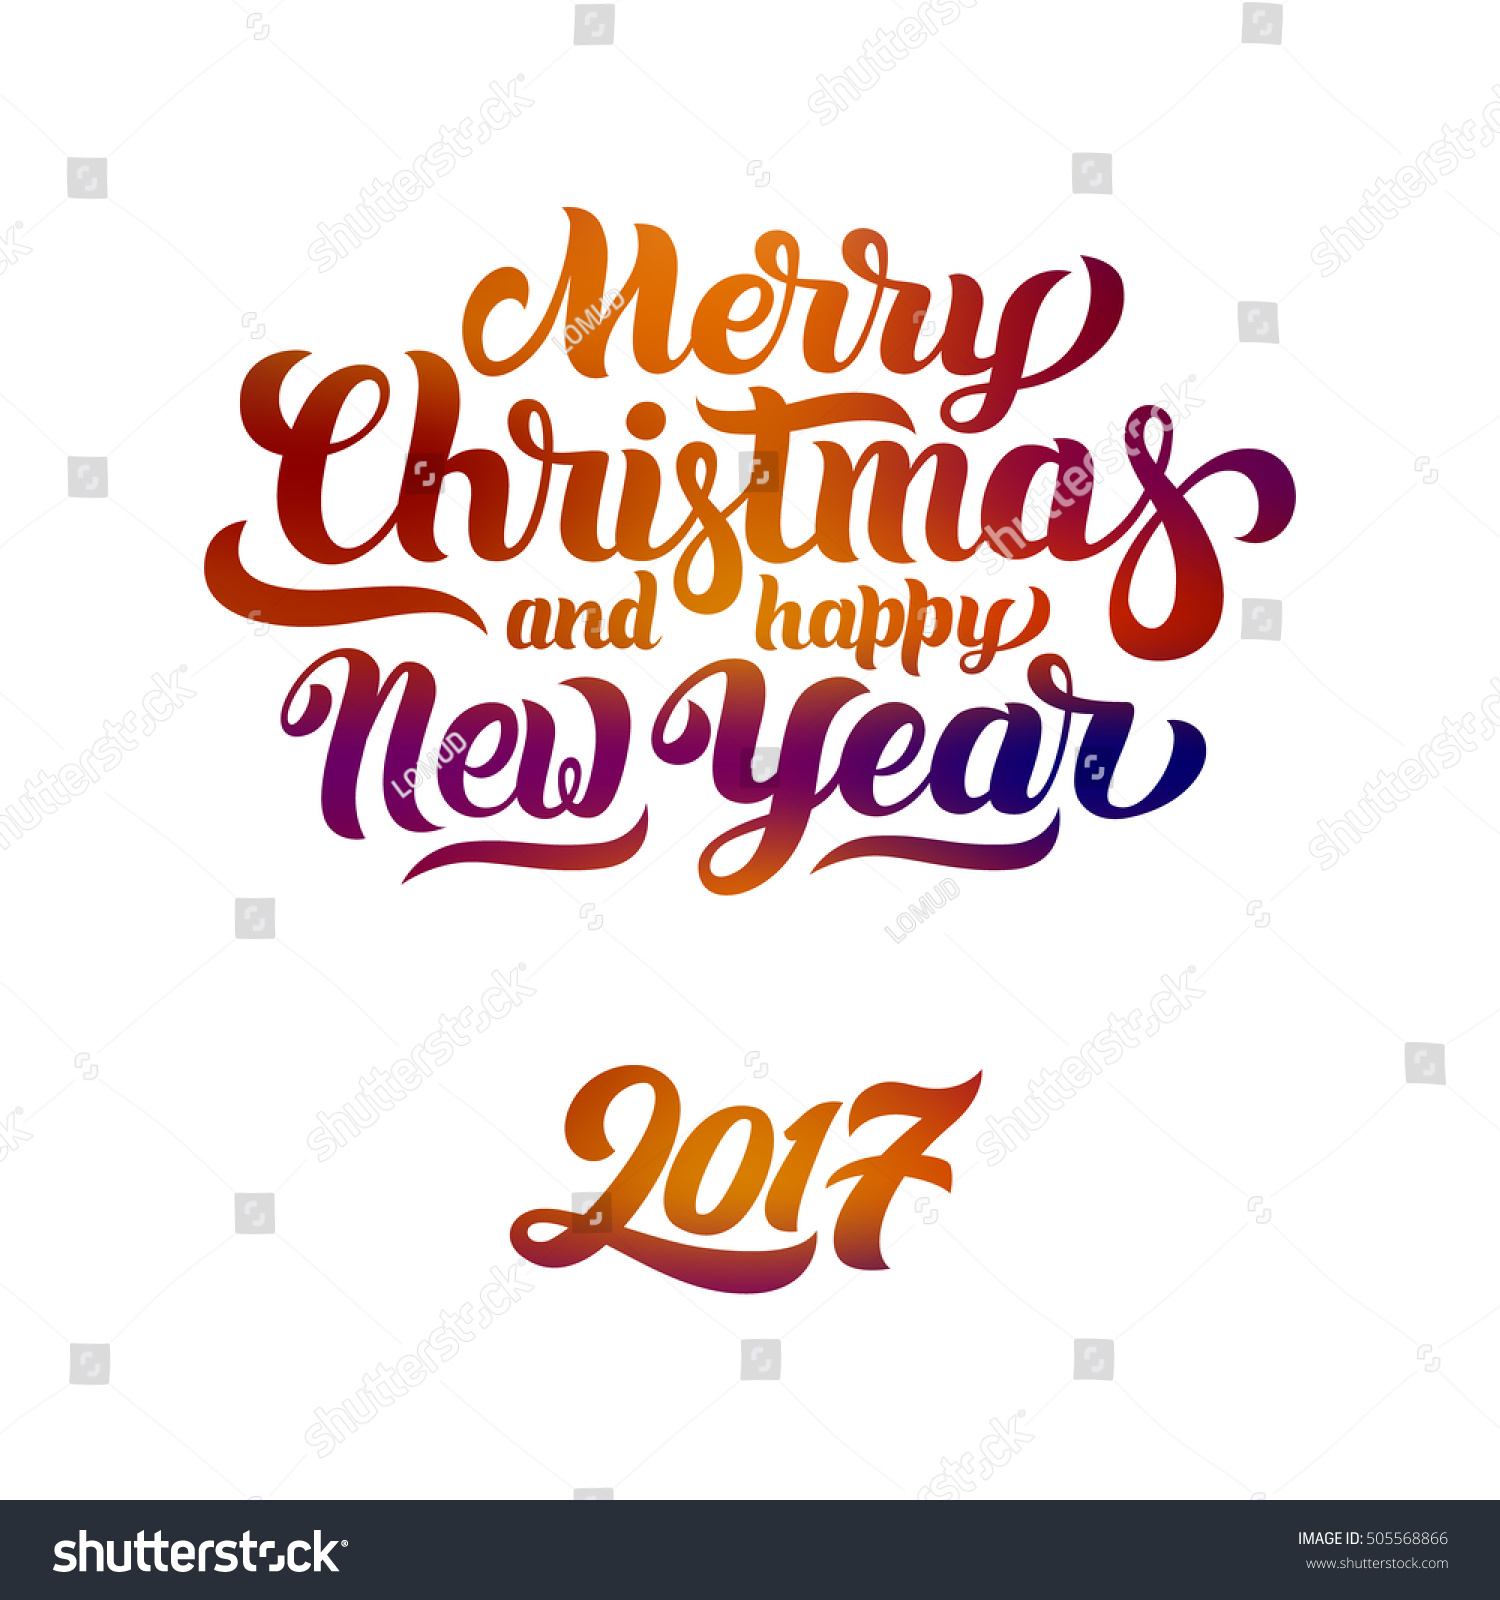 merry christmas happy new year 2017 stock vector royalty free 505568866 https www shutterstock com image vector merry christmas happy new year 2017 505568866